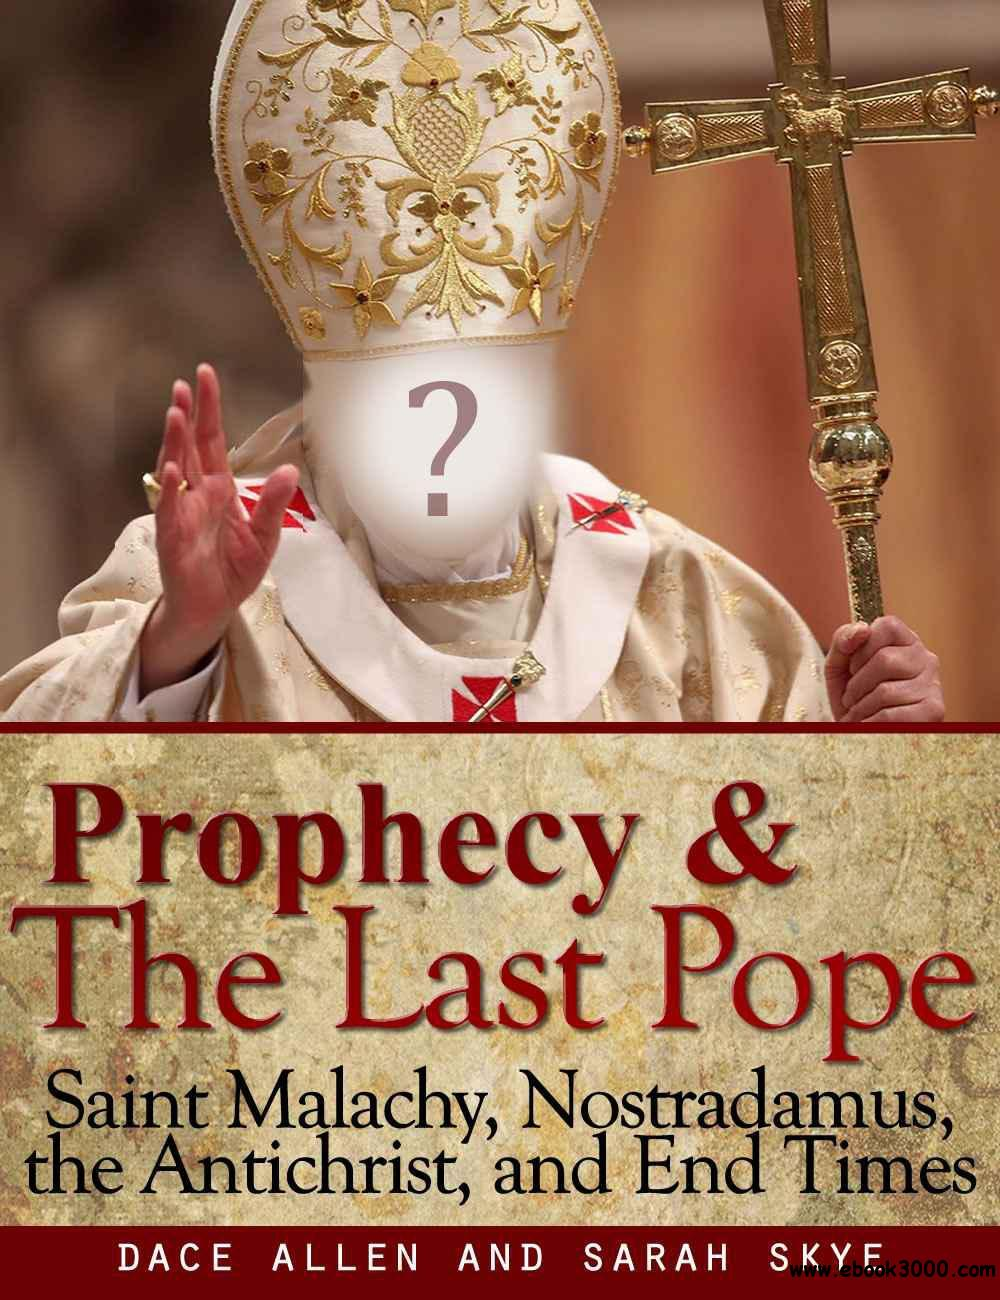 Prophecy & The Last Pope: Saint Malachy, Nostradamus, the Antichrist, and End Times download dree